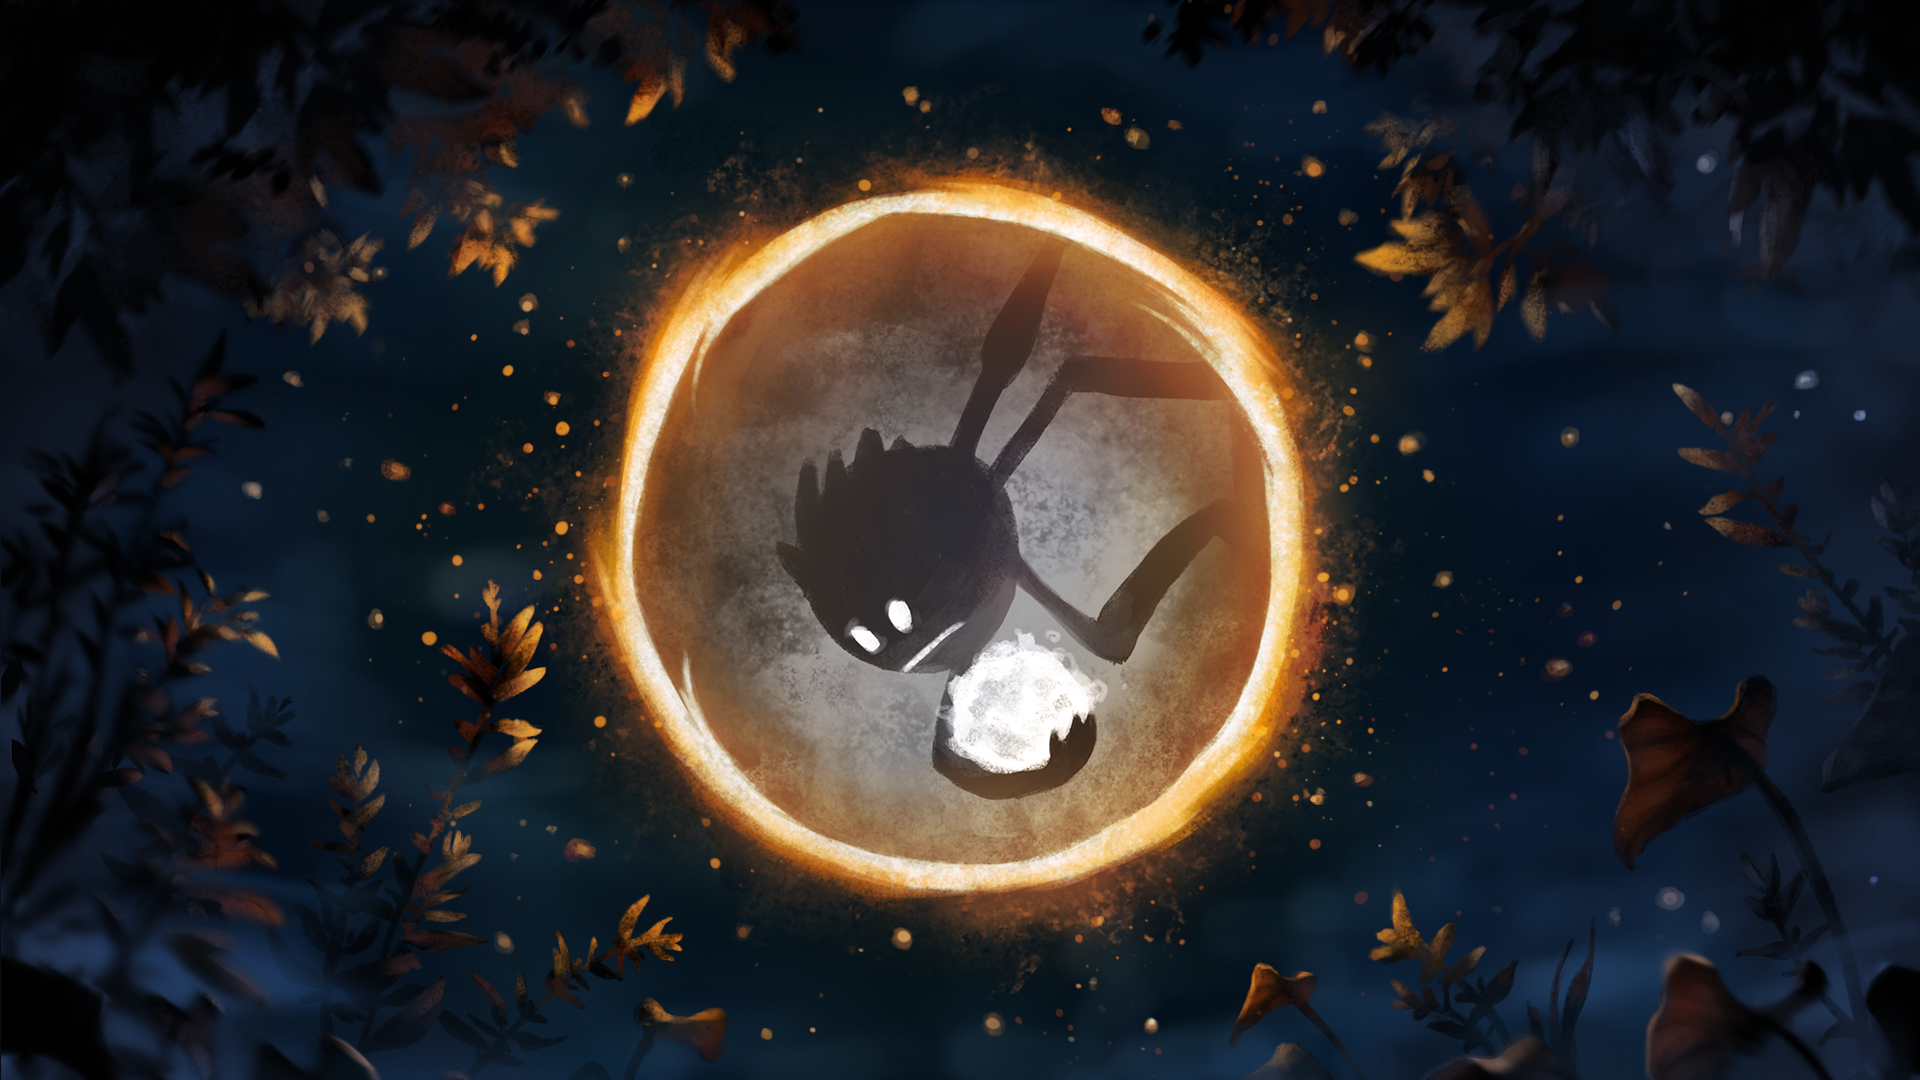 Get Back Here! achievement for Ori and the Blind Forest on Nintendo Switch